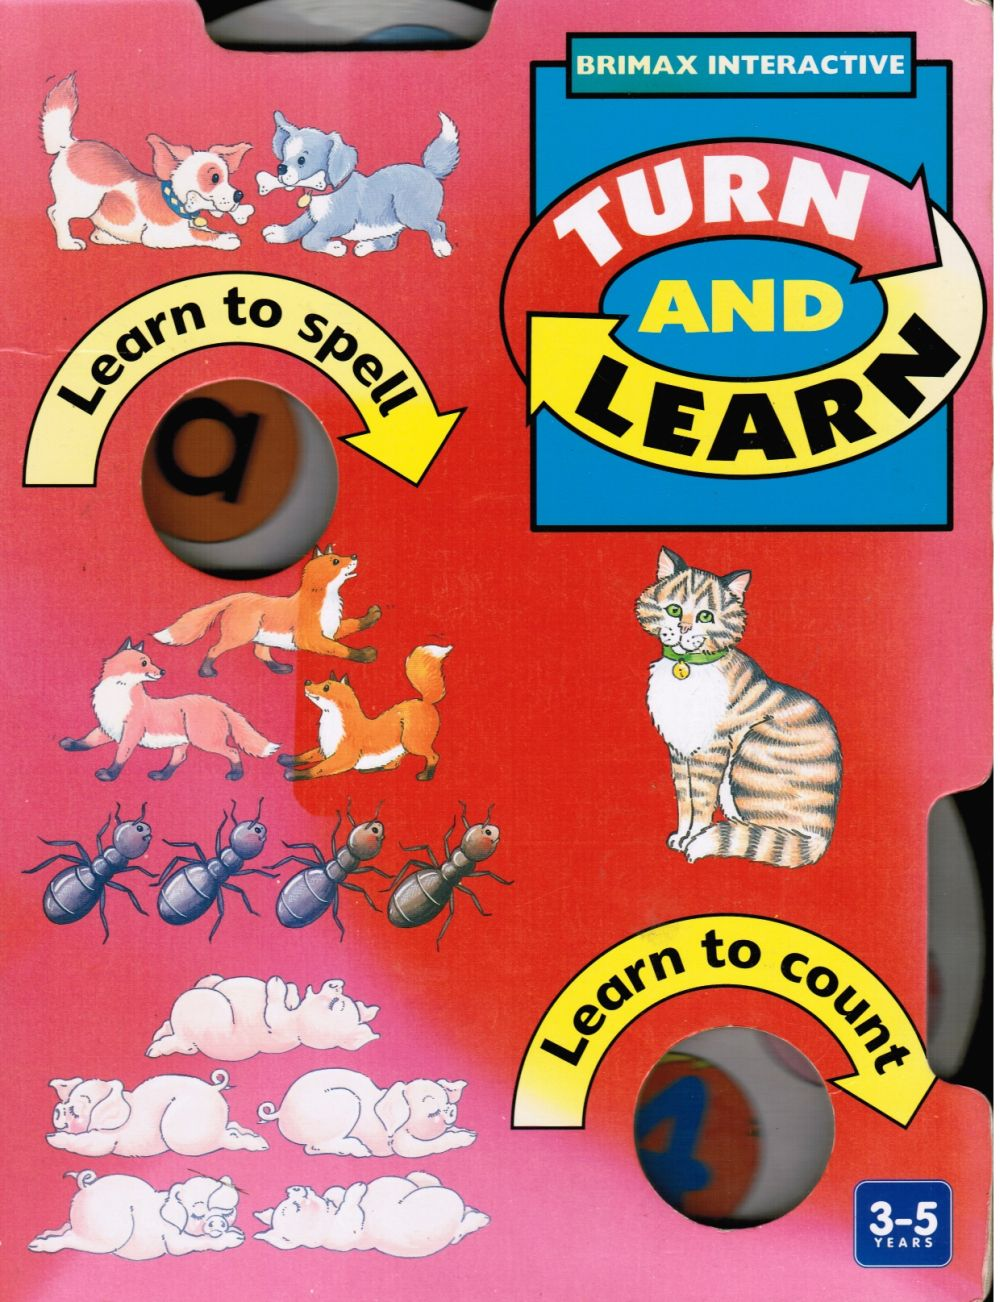 Image for Turn and Learn - Brimax Interactive